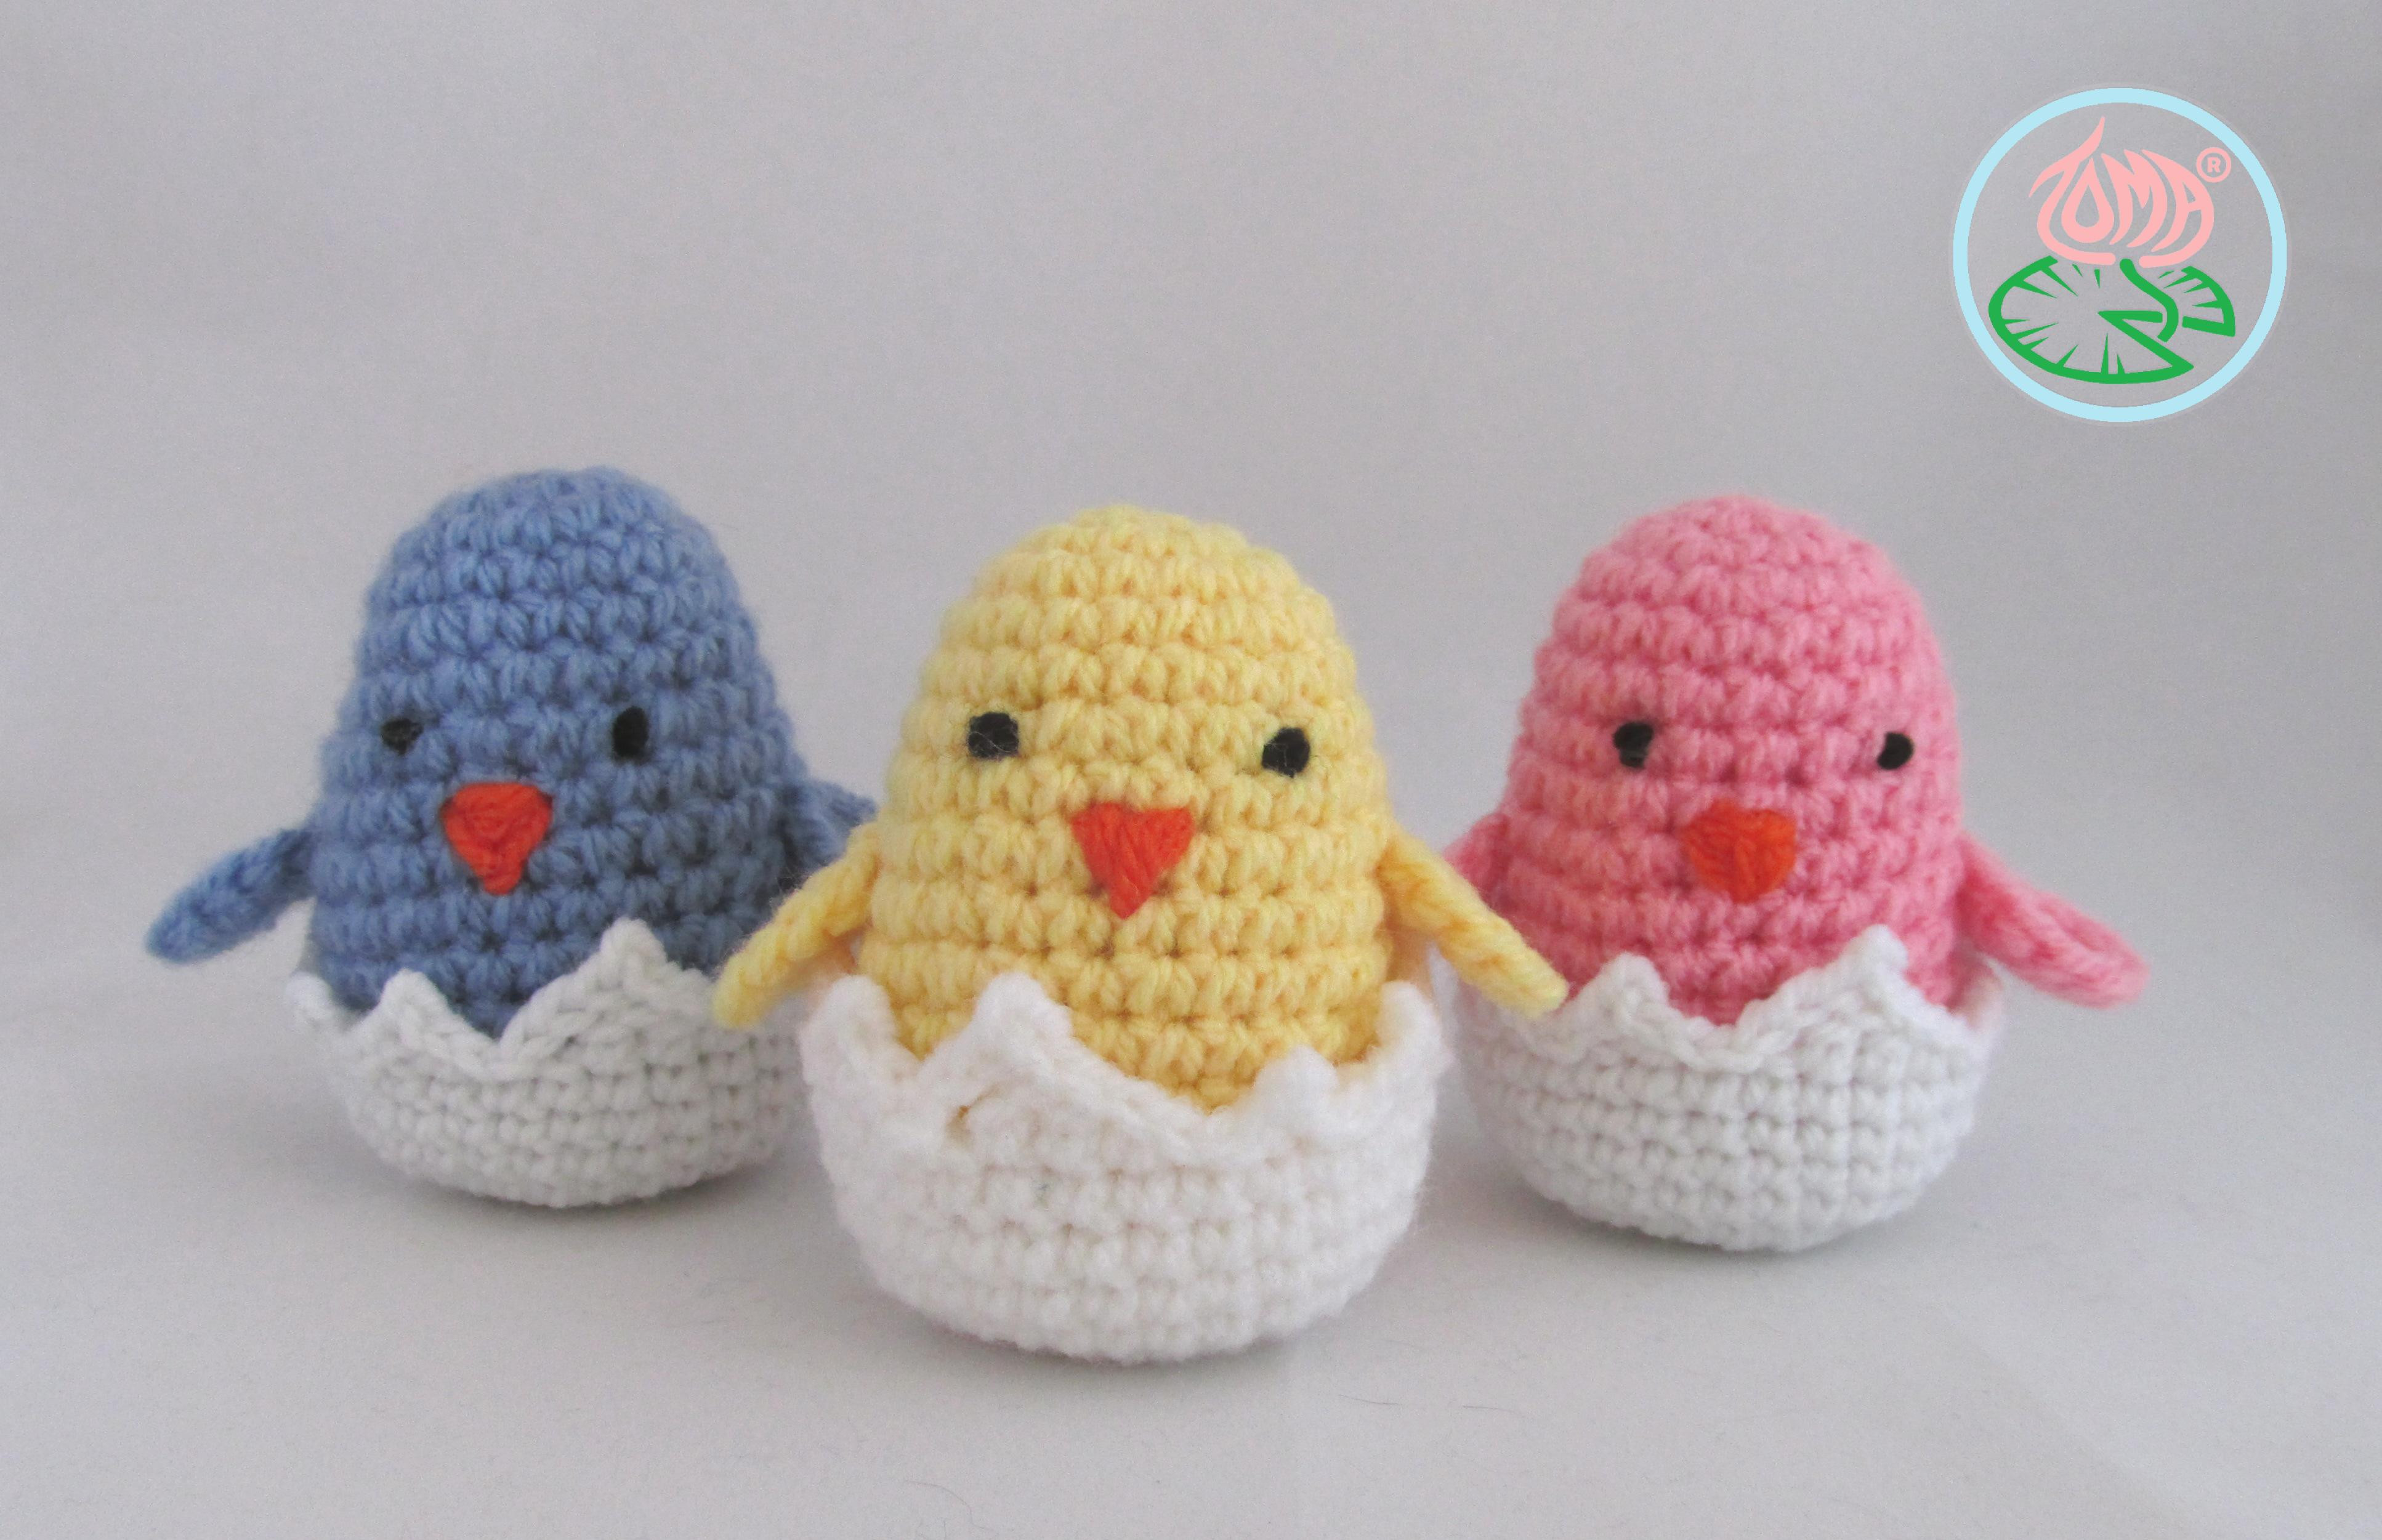 Crochet Easter Patterns Awesome Free Pattern Amigurumi Hatching Easter Chicks Of Charming 45 Pics Crochet Easter Patterns